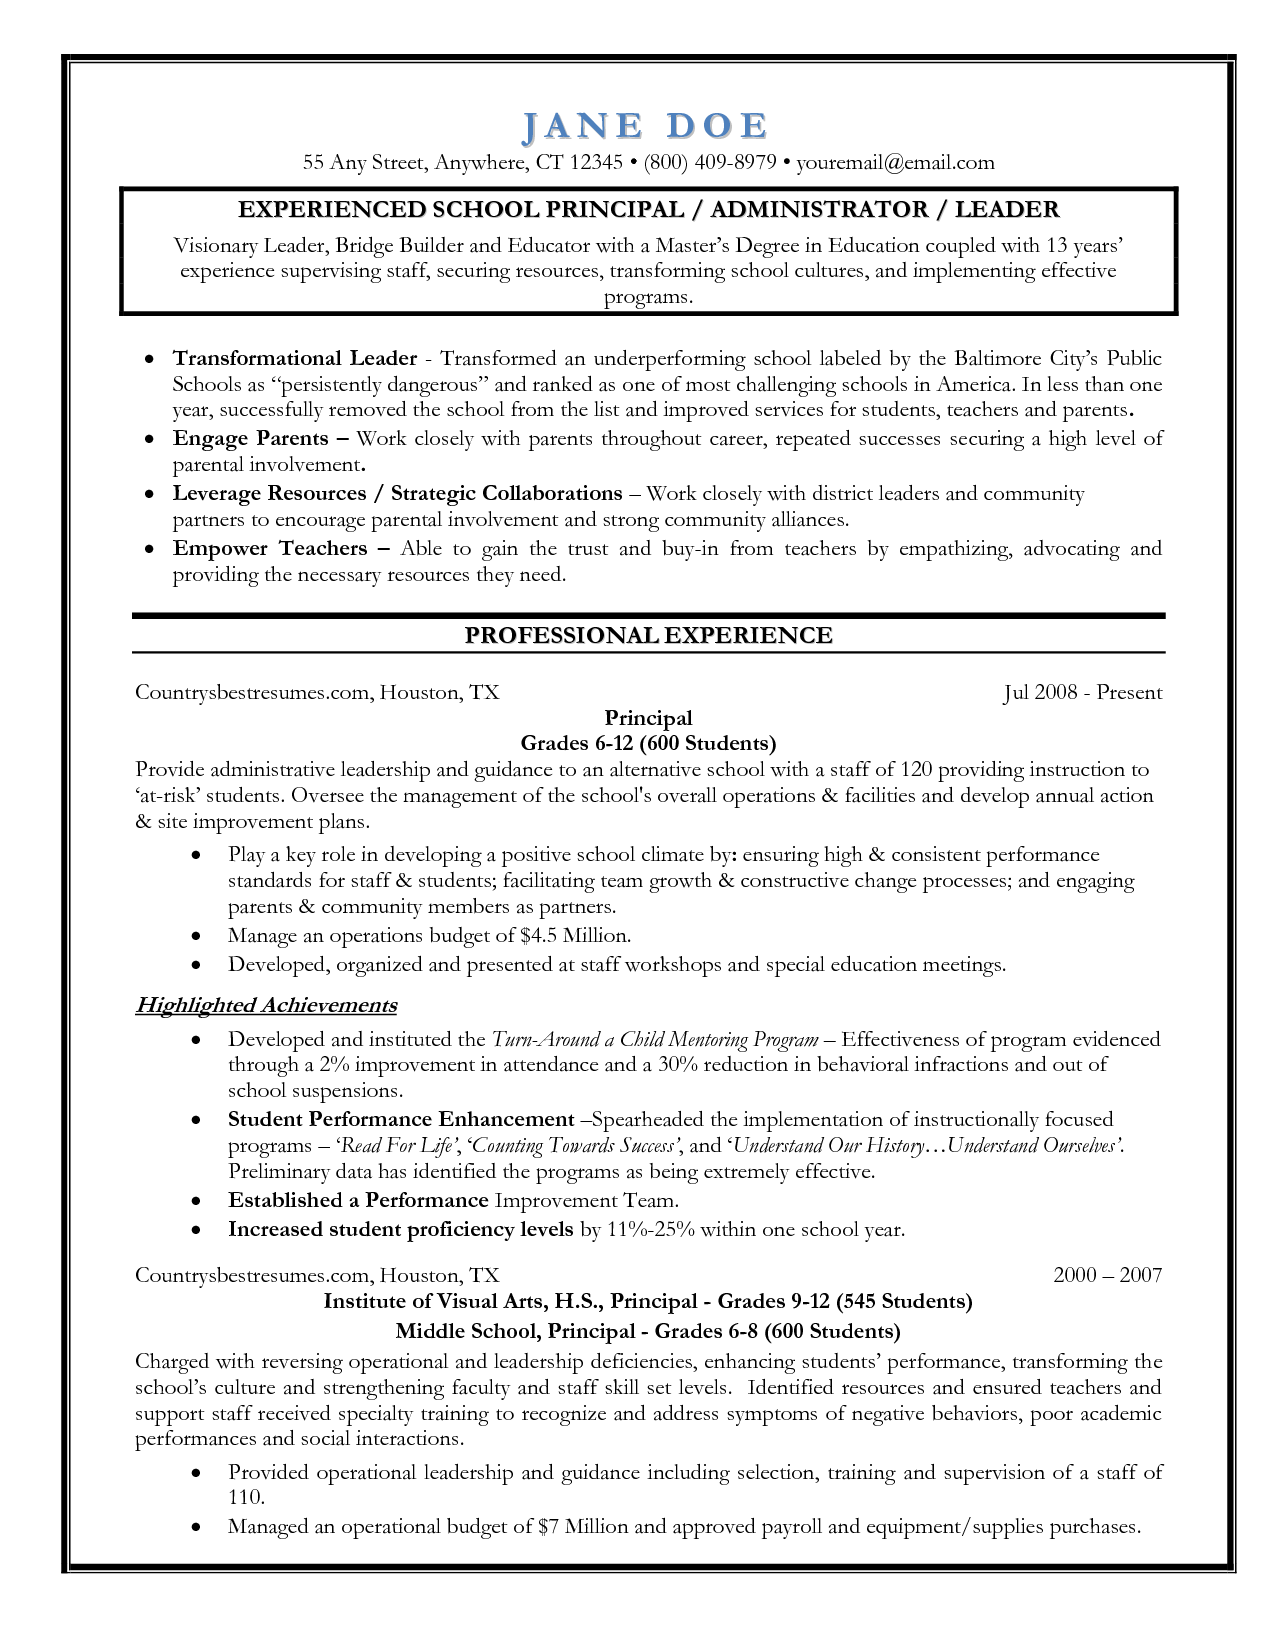 entry level assistant principal resume templates senior educator principal resume sample - Sample Resume Entry Level Assistant Principal